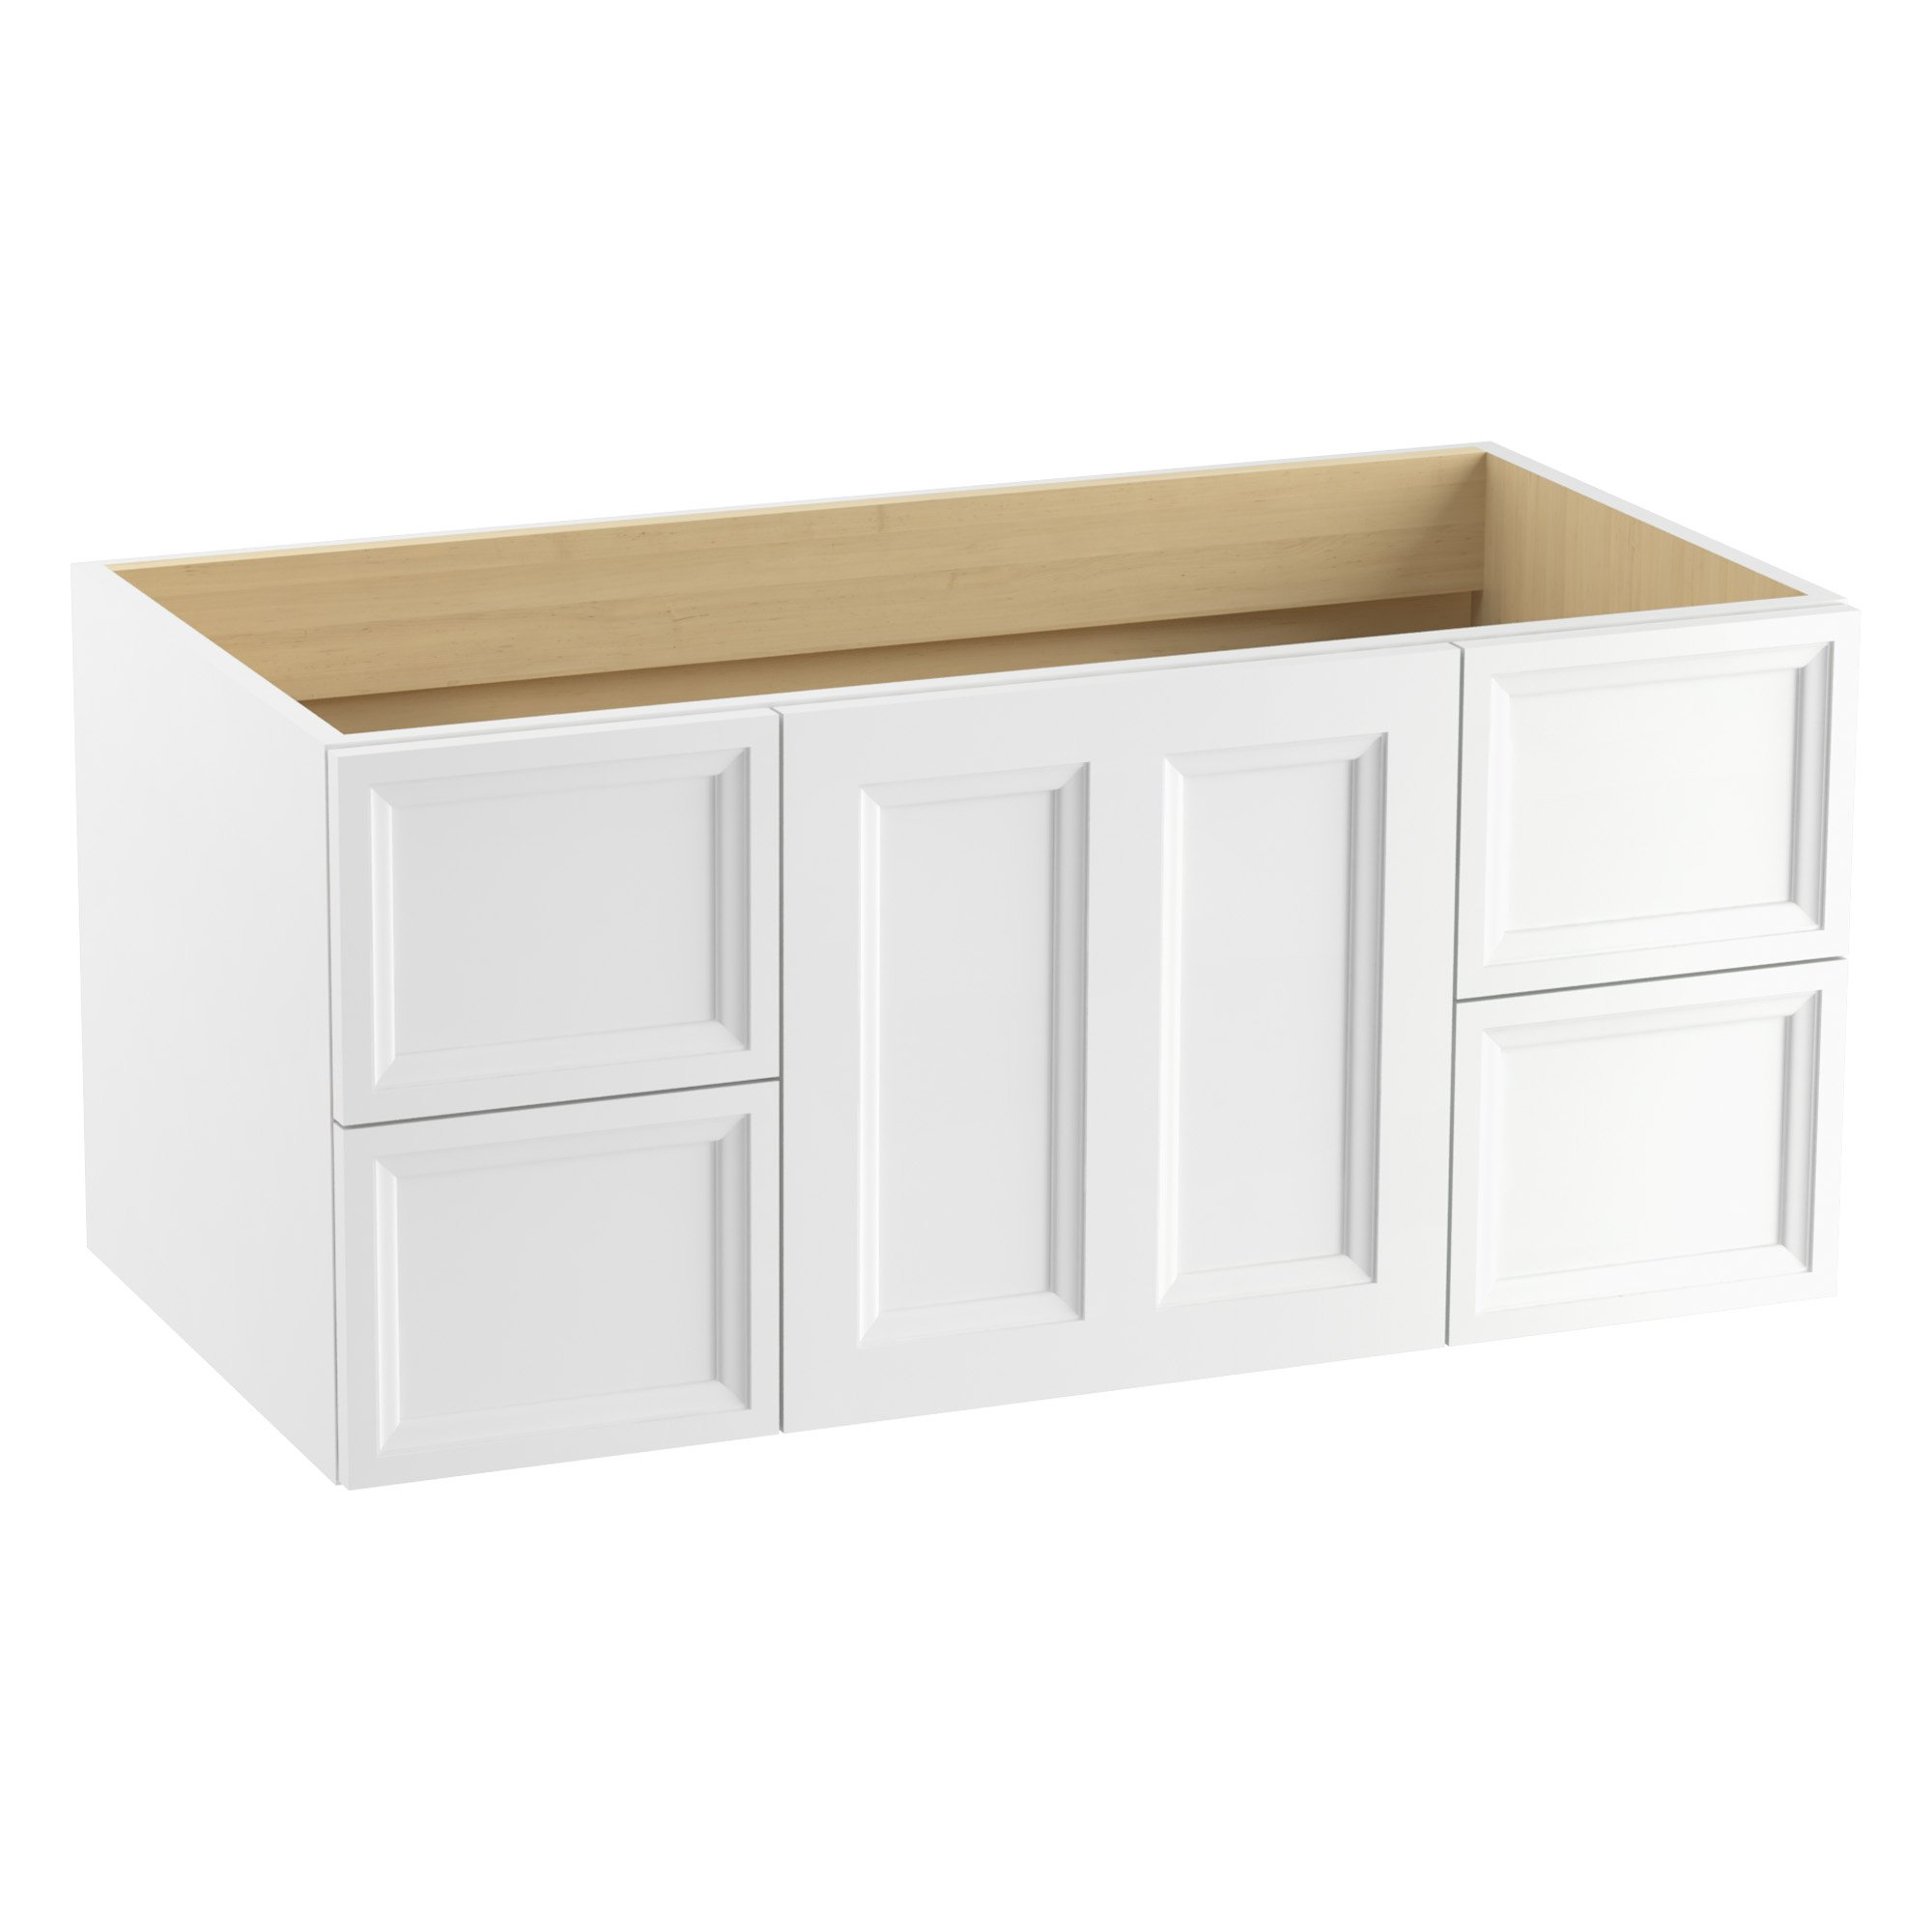 KOHLER K-99563-1WA Damask Wall-Hung Vanity with 1 Door and 4 Drawers, Linen White, 42''